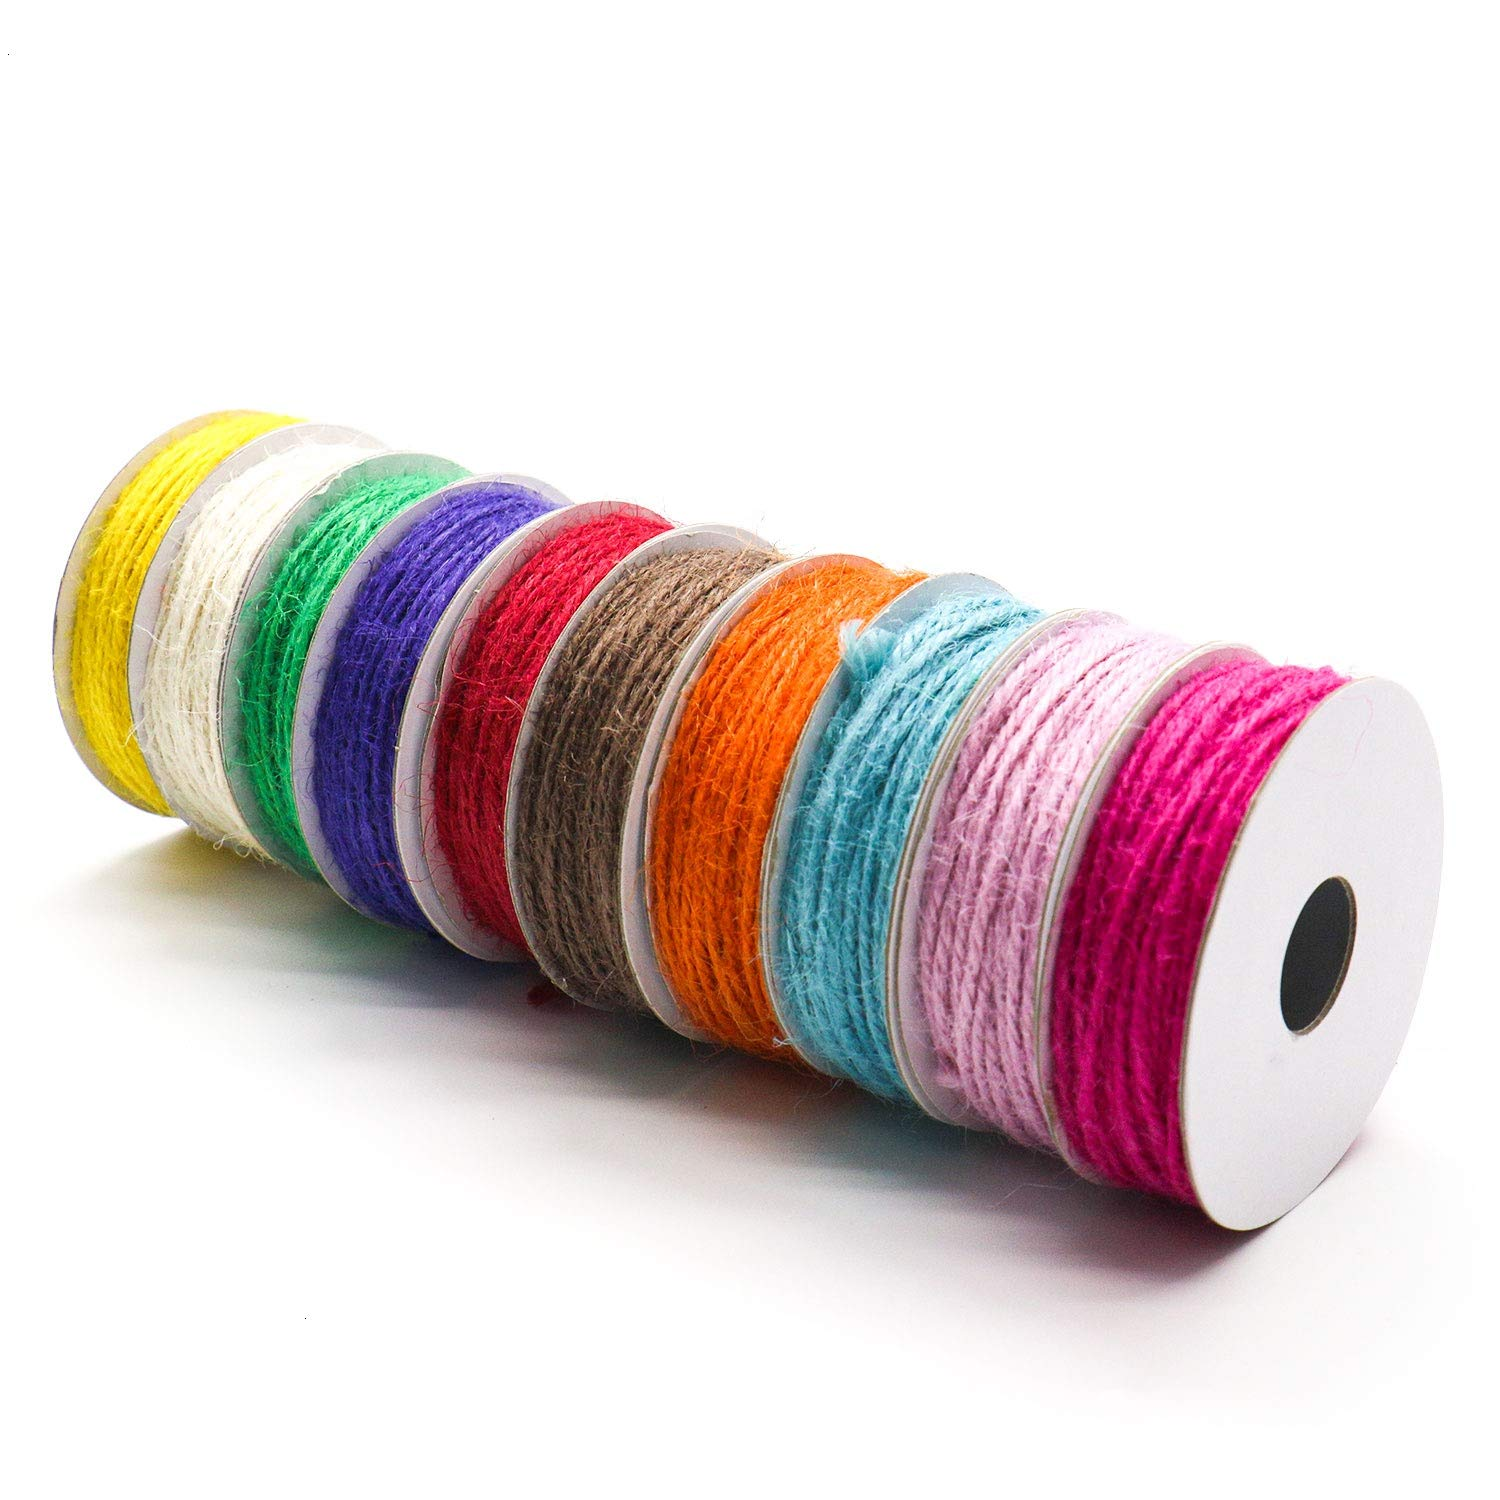 IDS 10 Pieces 20 Yards Colorful Natural Cotton Twine Gift Twines for Artworks, DIY Crafts, Gift Wrapping Twine, Picture Display and Embellishments